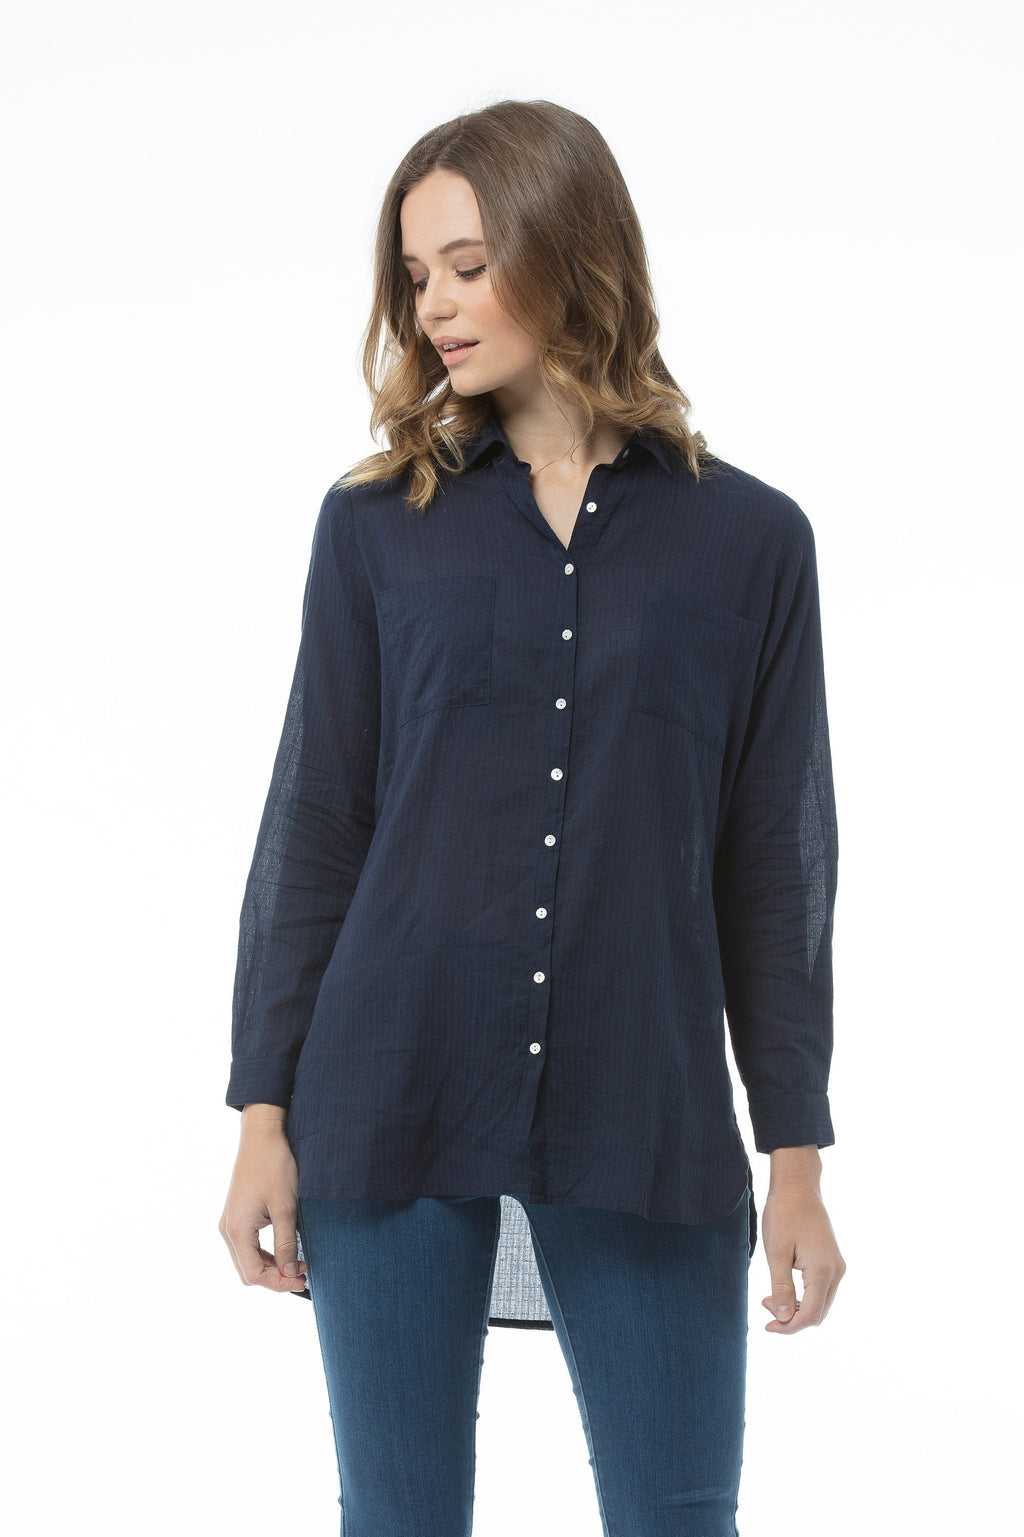 HEDDA Top - Navy